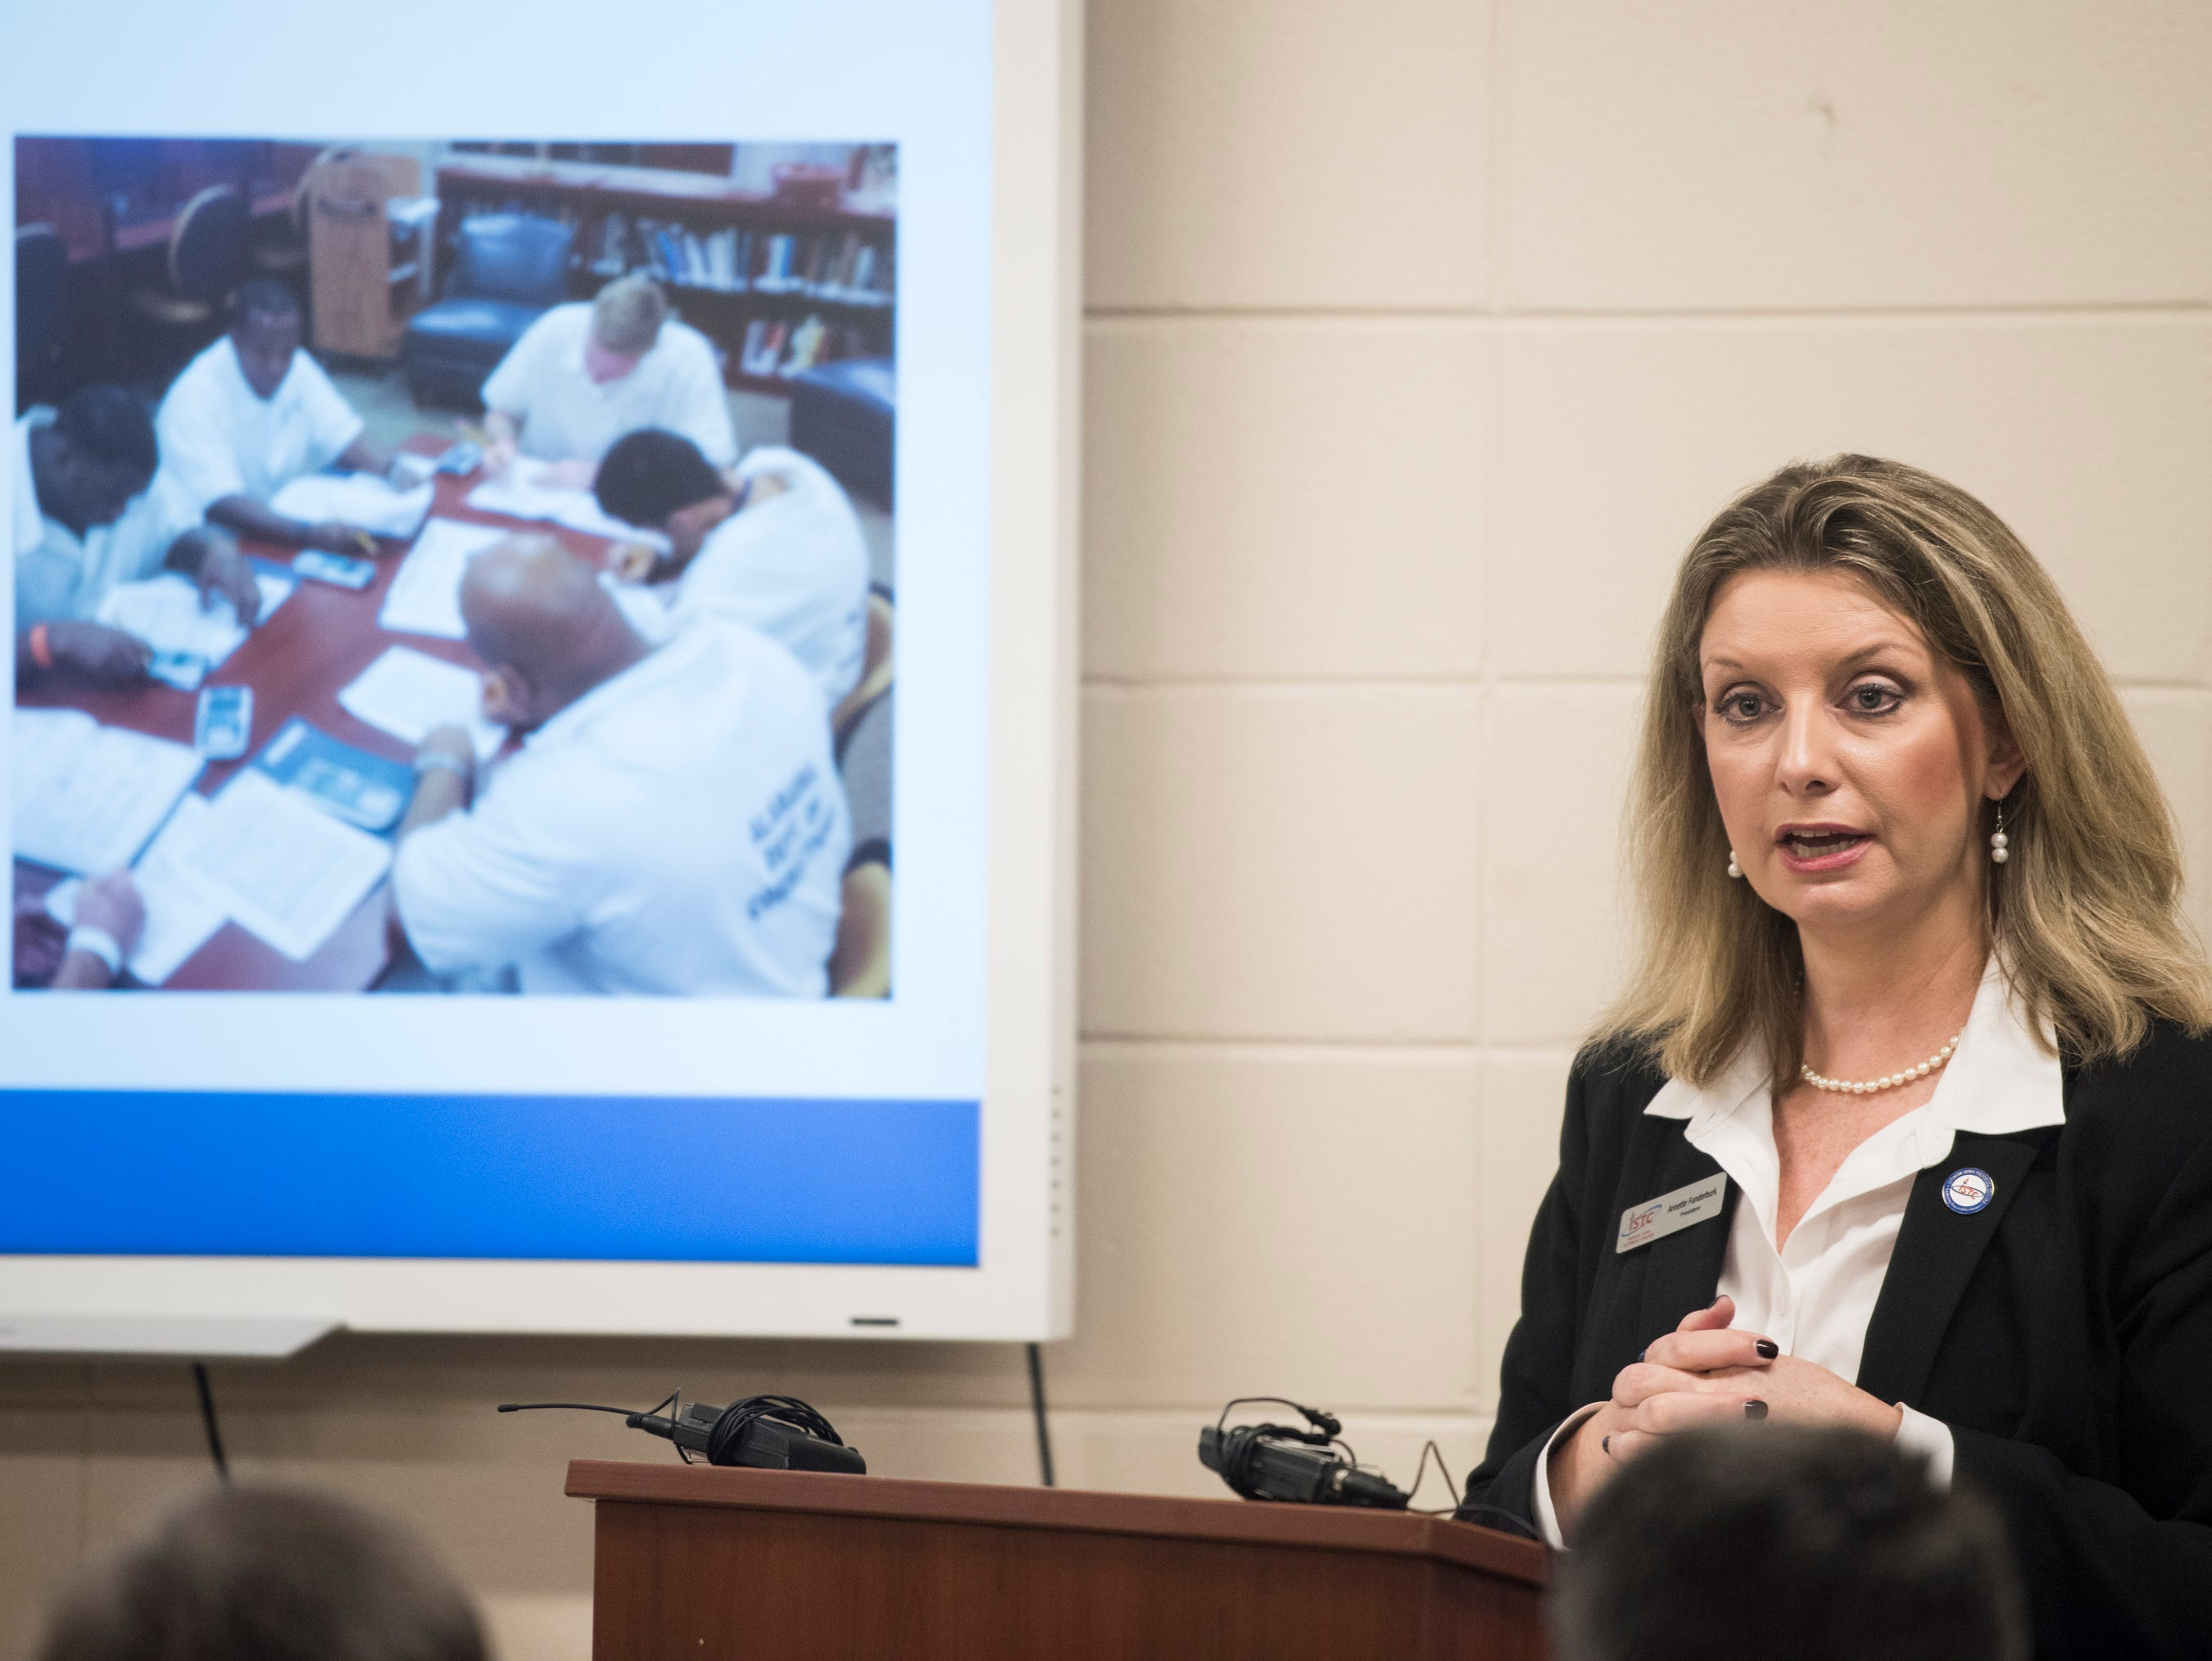 ISTC president Annette Funderburk speaks to officials at the Ingram State Technical College Draper instructional service center in Elmore, Ala., on Thursday, Feb. 21, 2019.